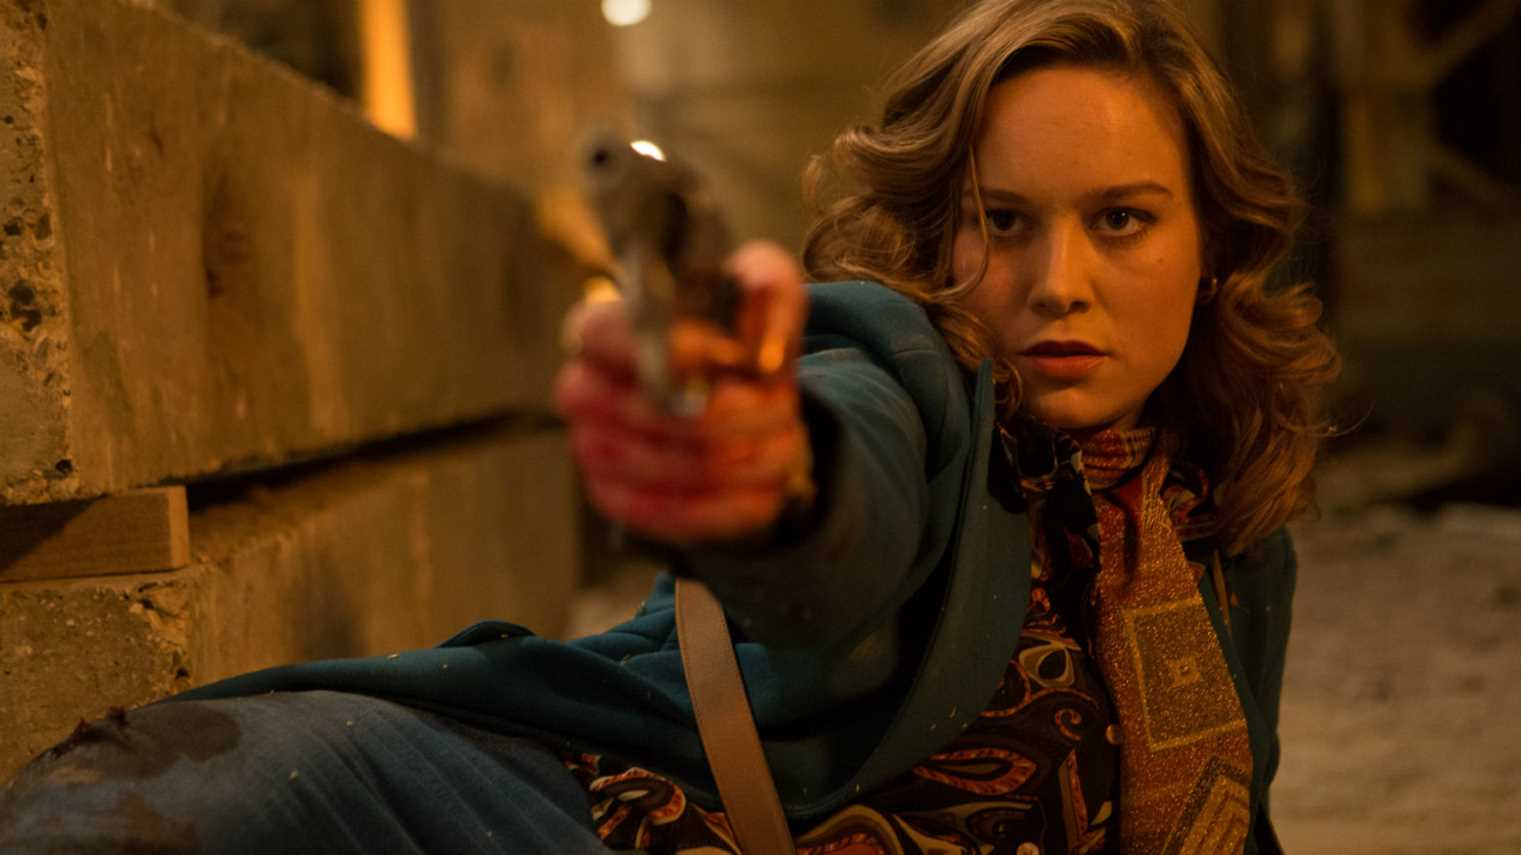 2017 looks set to be the year Brie Larson takes on the multiplexes.